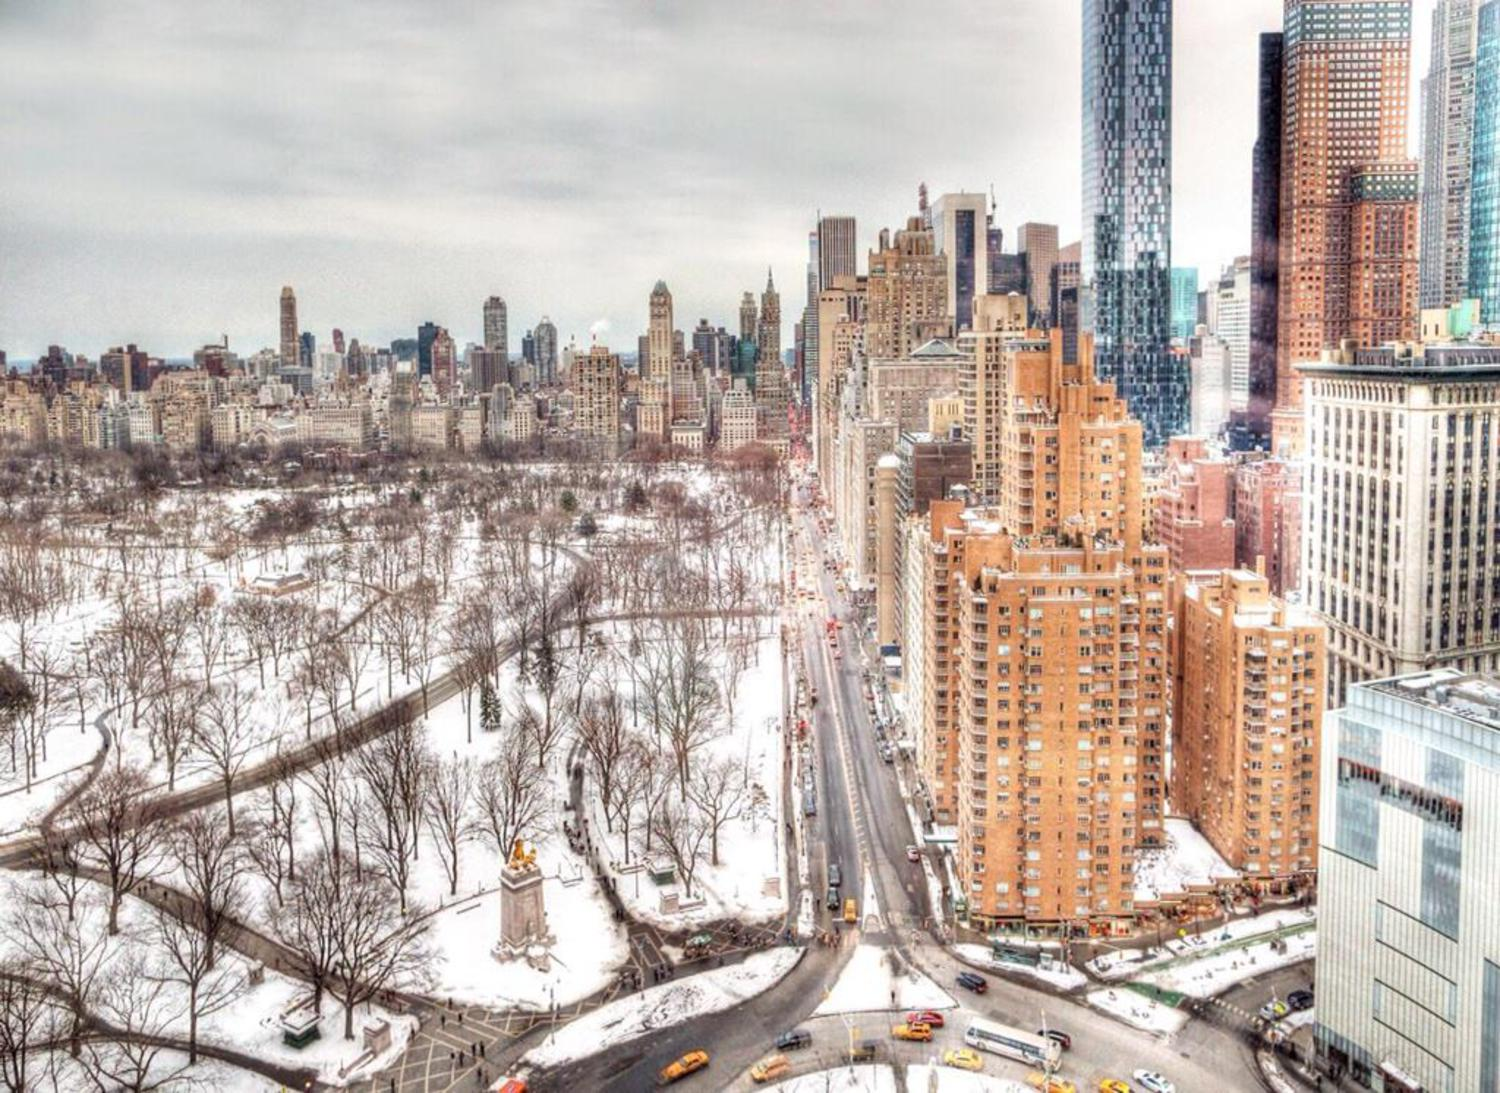 Looking out over a snowy Central Park South #NYC (@tofurious) http://t.co/2YdASS6SA1